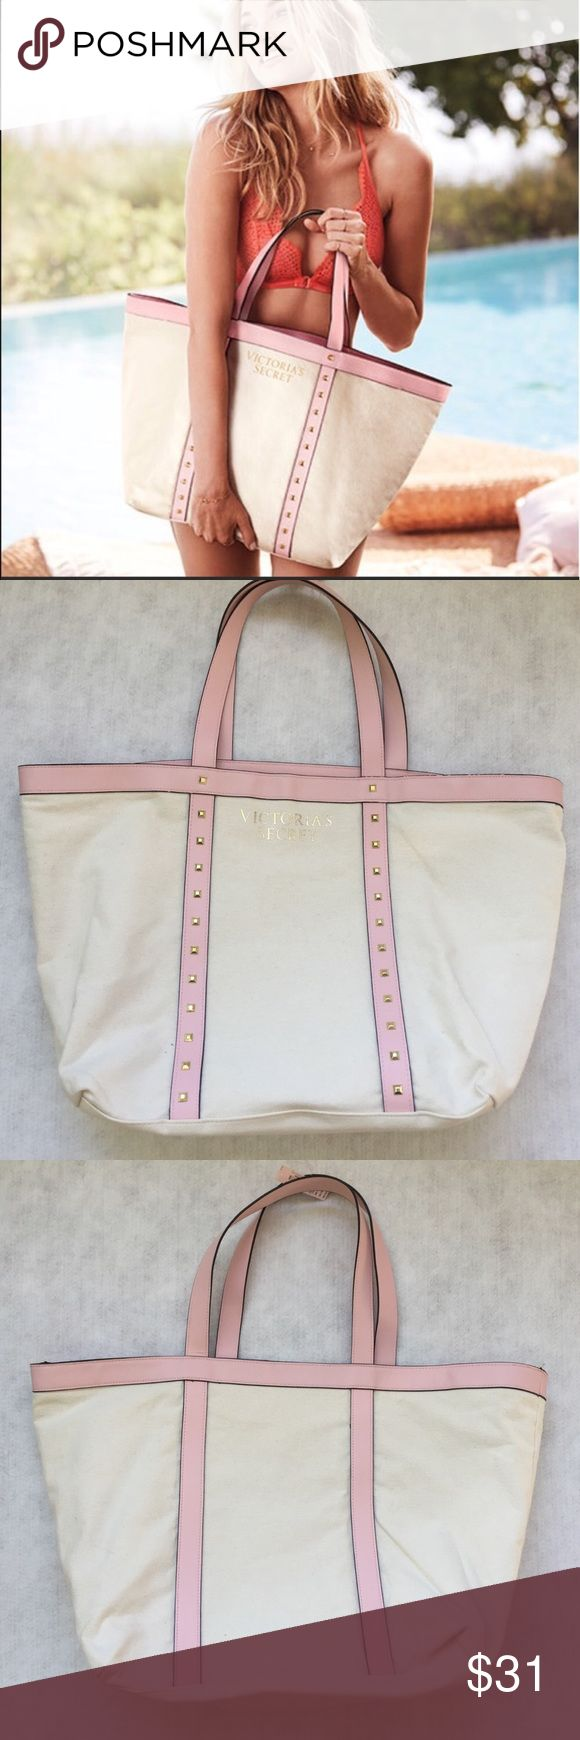 Victoria's Secret 2017 Large Canvas Tote Cream canvas and light pink faux leather with gold studding. Black interior. A couple loose threads on one handle and tiny flaws in the black leather trim (see pictures); NWT and never used! Great carryall for errands or beach Victoria's Secret Bags Totes